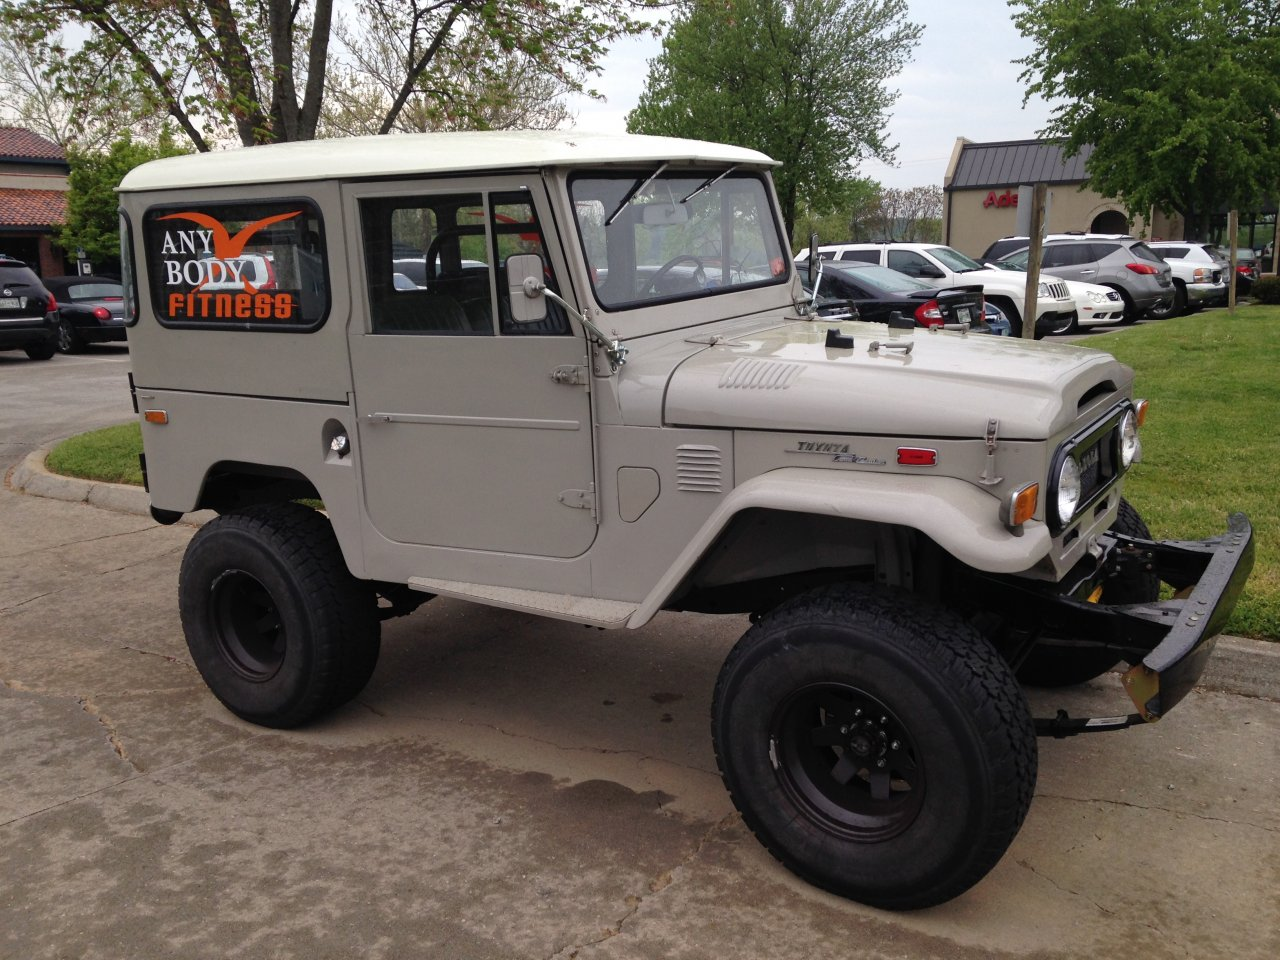 Campers For Sale In Ga >> For Sale - 1972 FJ40 (Resto-Mod) | IH8MUD Forum